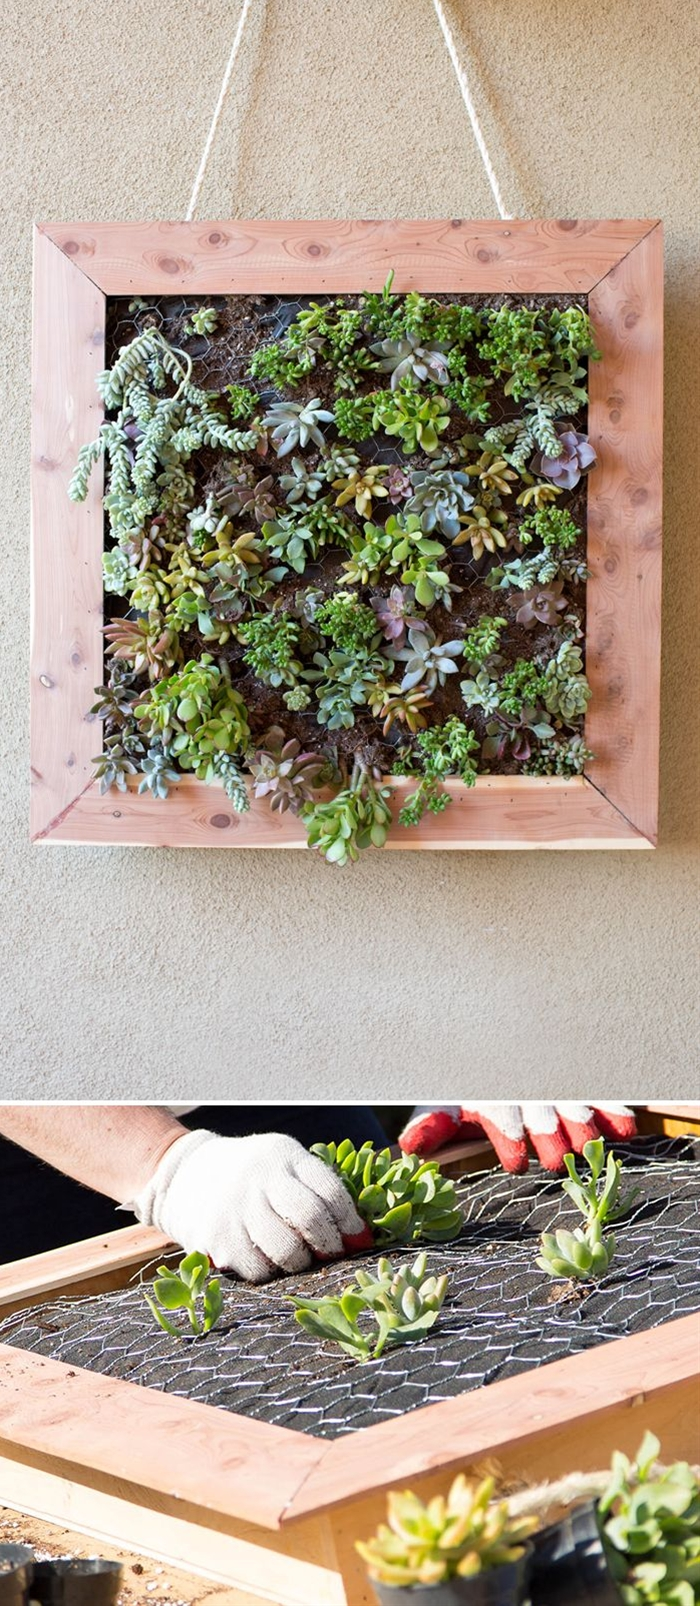 tlin Ketcham's recent backyard makeover for The Home Depot Blog's Patio Style Challenge series featured several DIY projects. Caitlin's the designer and blogger behind Desert Domicile, and here she has a tutorial for a vertical succulent garden that decorates her front porch.